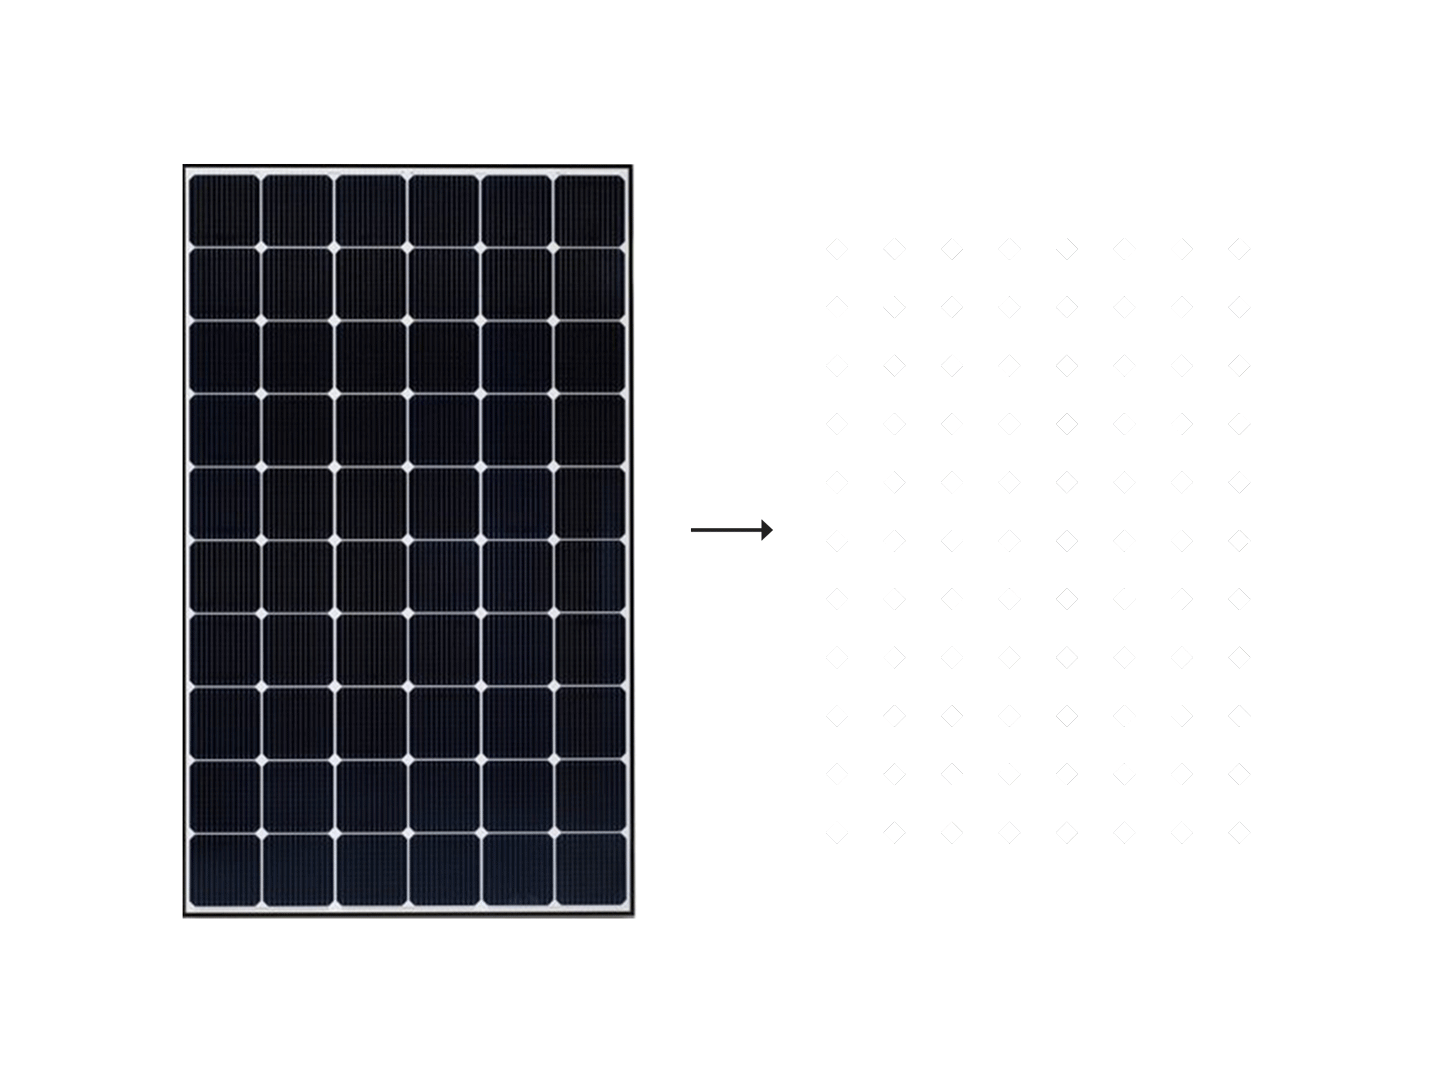 Solar-Panel-Breakdown-grid_MR